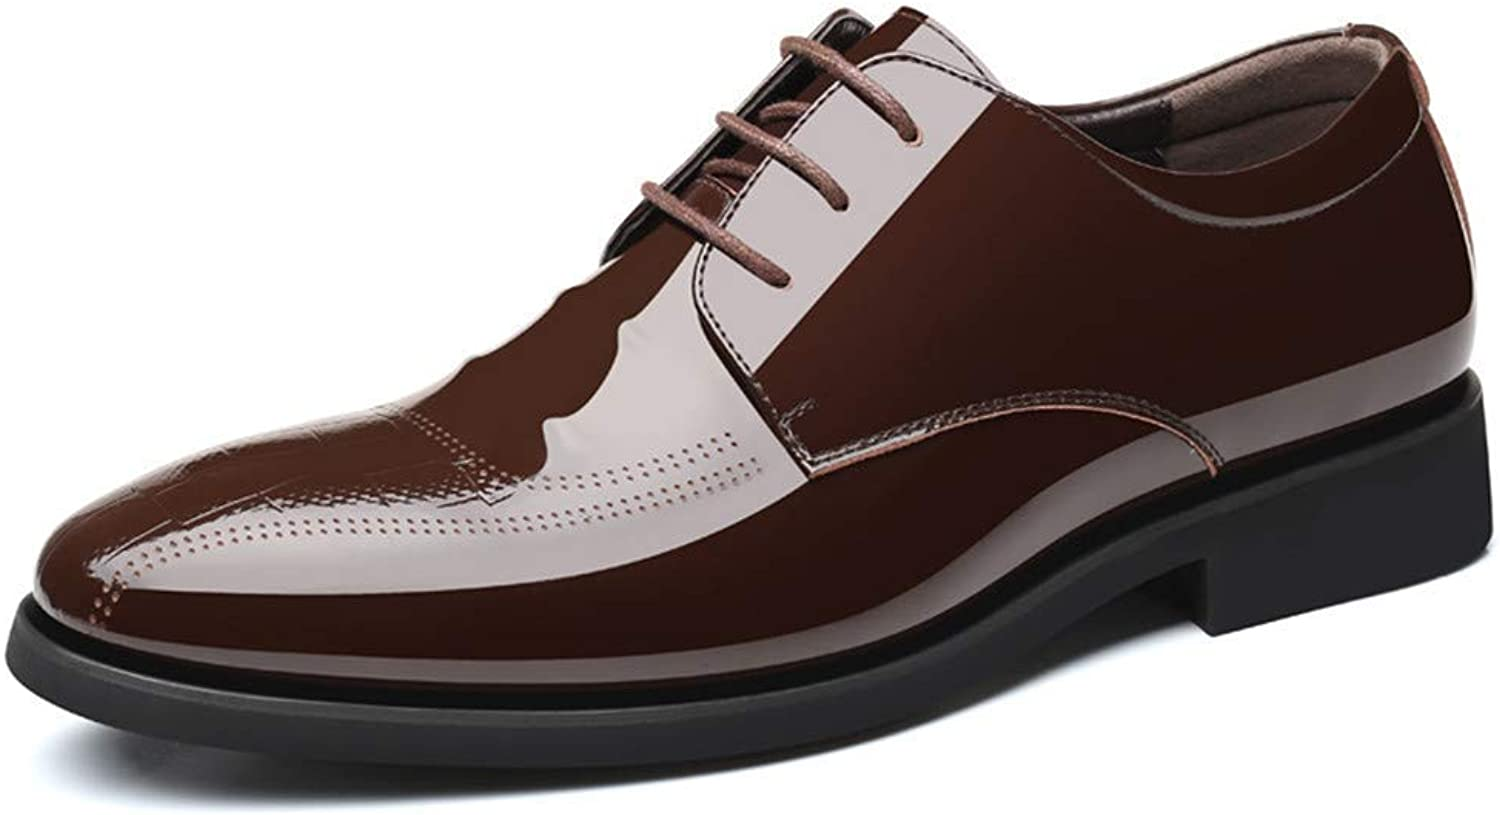 2018 Men Business Oxford Casual Lace-up Style And Foot Style Patent Leather Formal shoes (color  Lace Brown, Size  42 EU) (color   Lace Brown, Size   39 EU)